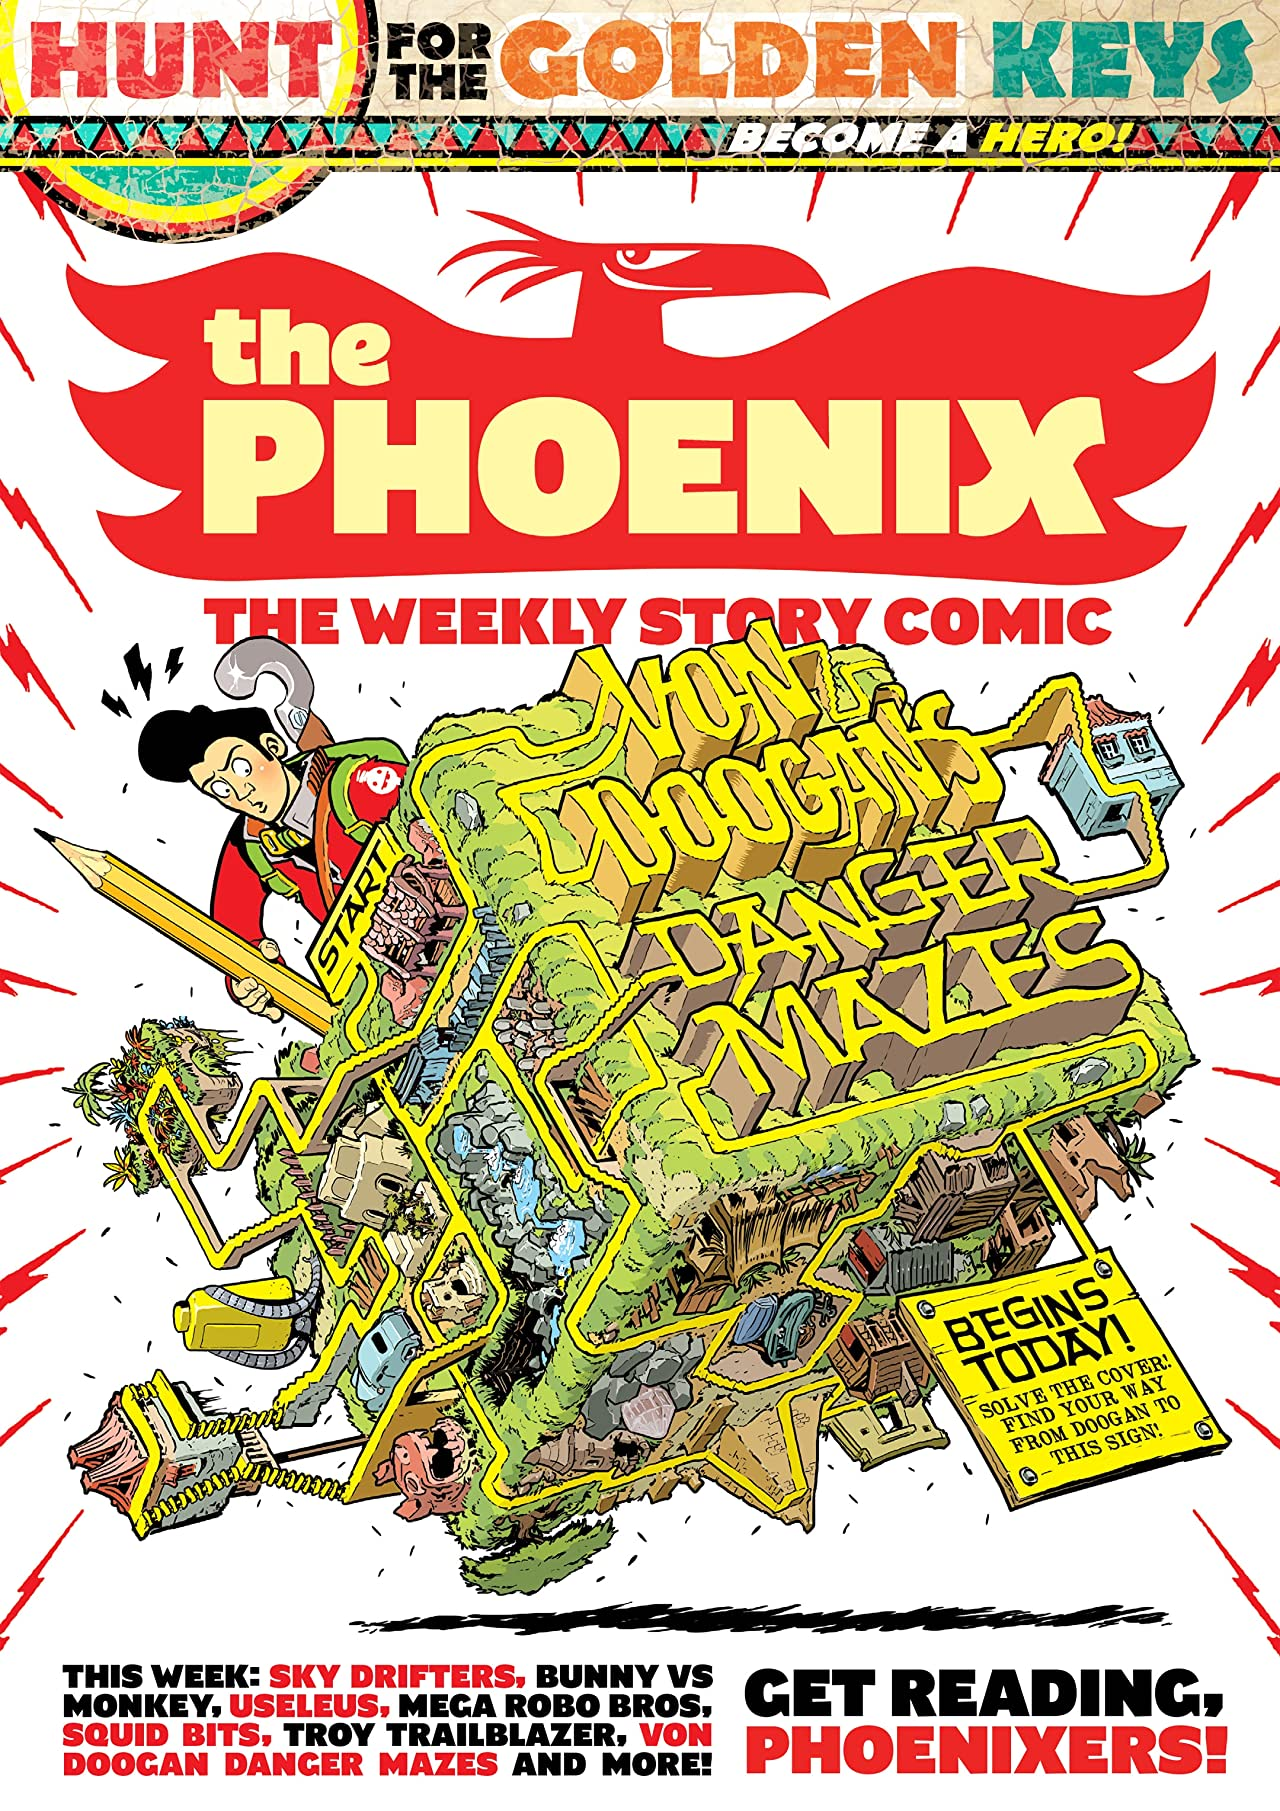 The Phoenix #194: The Weekly Story Comic